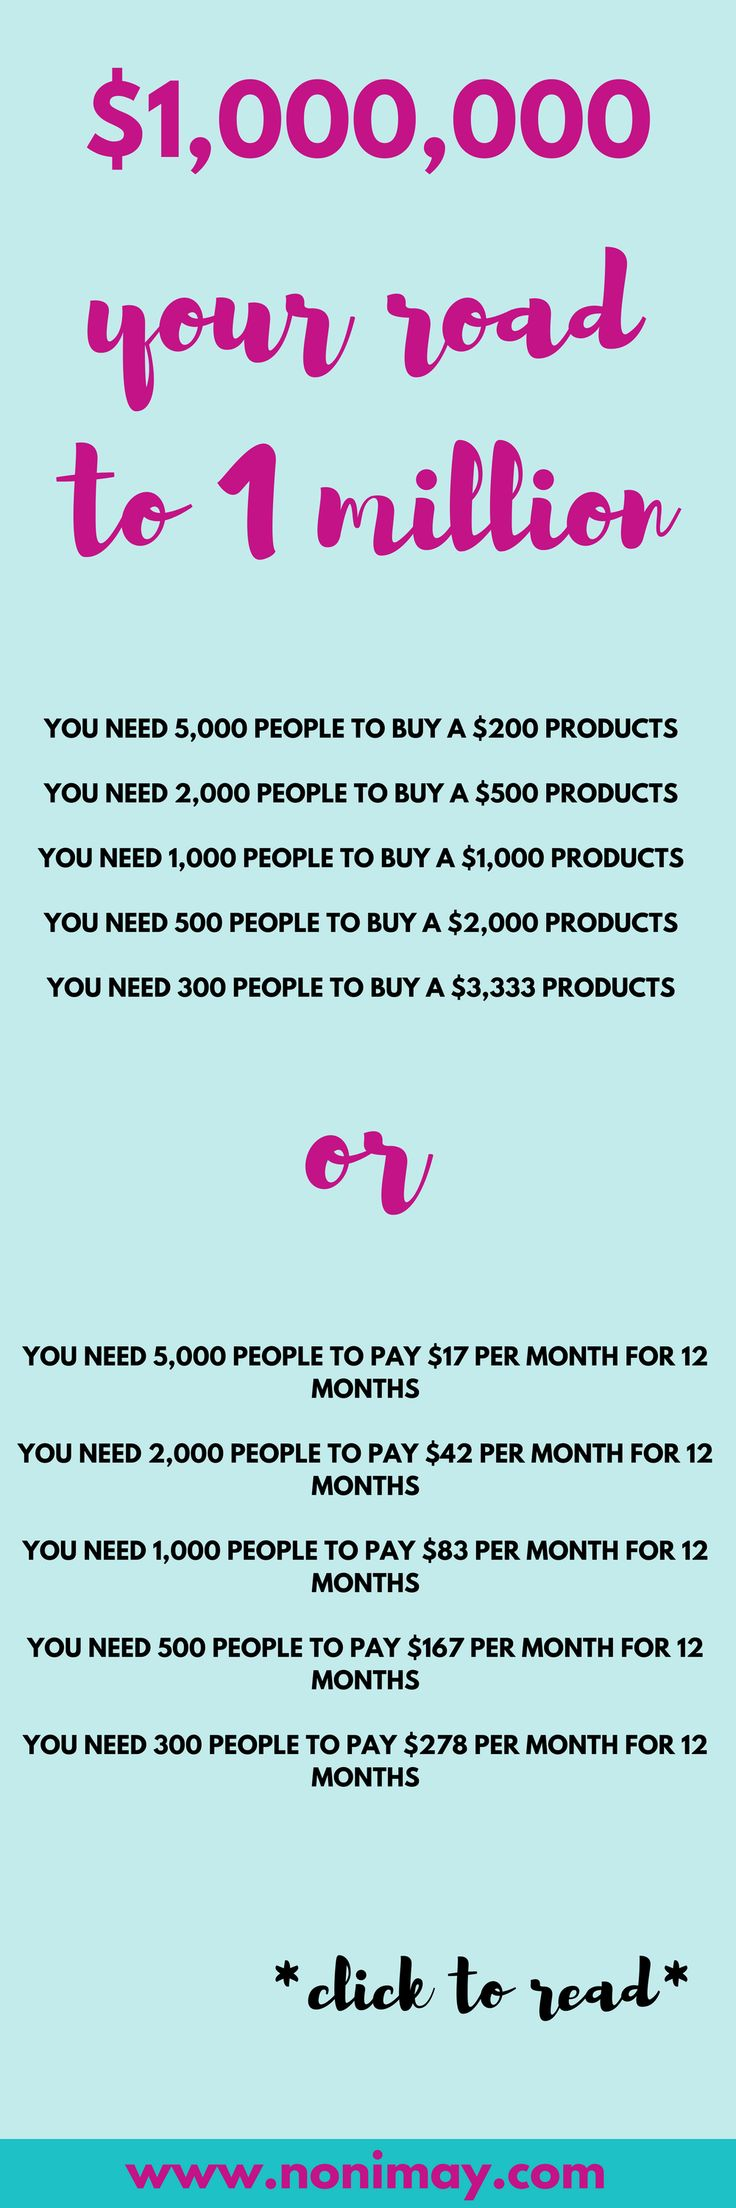 $1,000,000 your road to 1 million dollars. I decided to do a simple math of generating $1 million dollars overnight, and guess what? It's not that hard. All you need is a product.If you have a product, you just need 5.000 people to buy a $200 product. If you don't have a product but have a coaching business or service you offer, think about creating a mastermind or membership site.You'll need just 5.000 people pay $17 a month for 12 months.